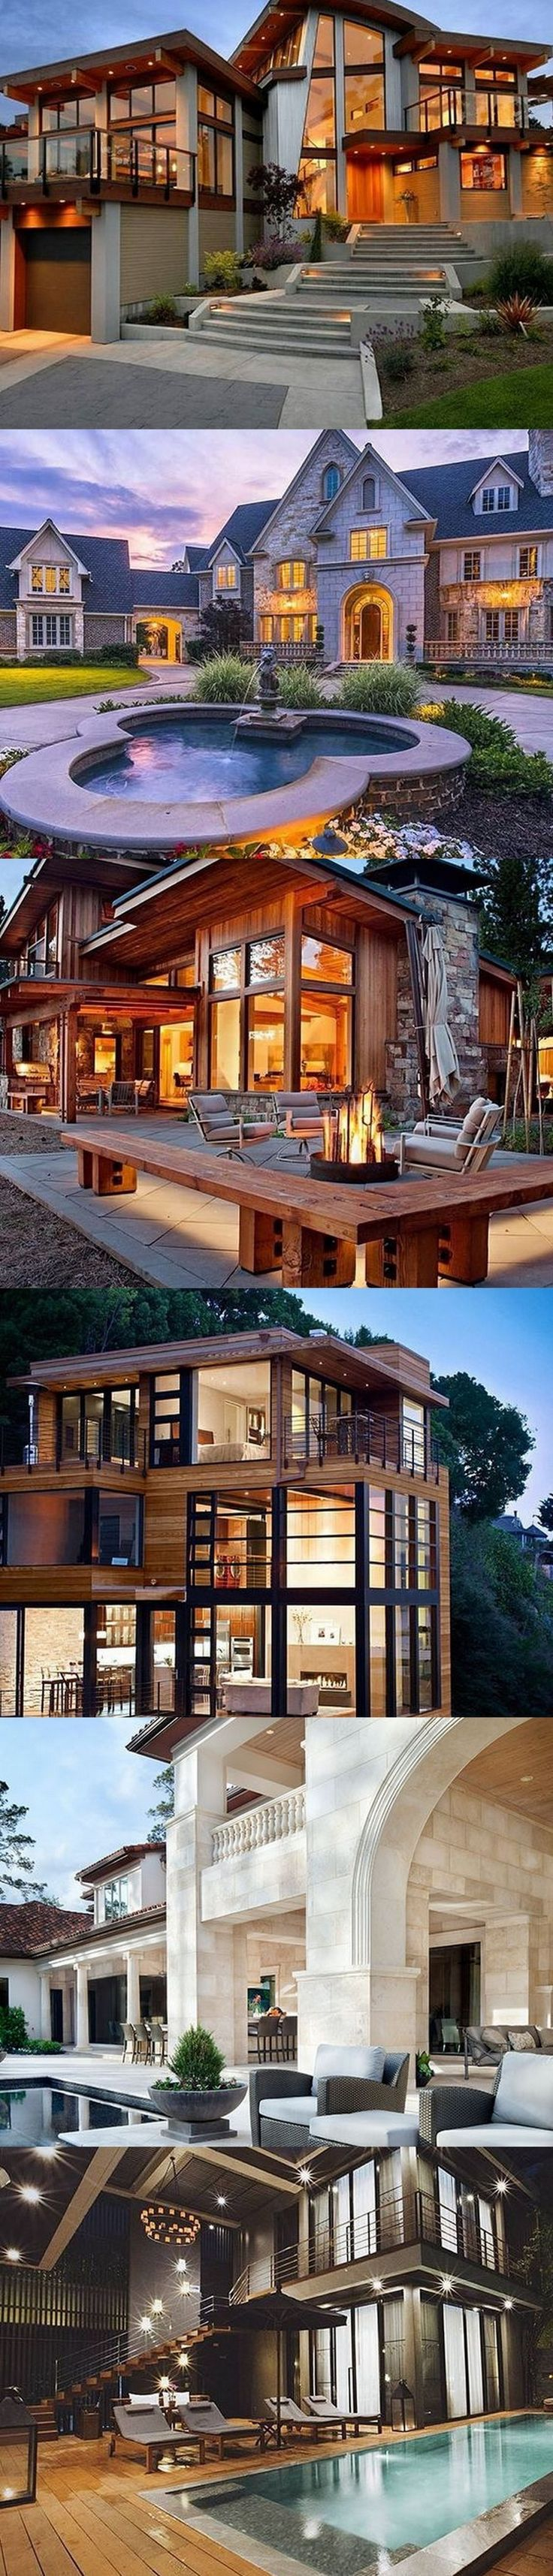 Best 25+ Luxury homes exterior ideas on Pinterest | Nice houses ...